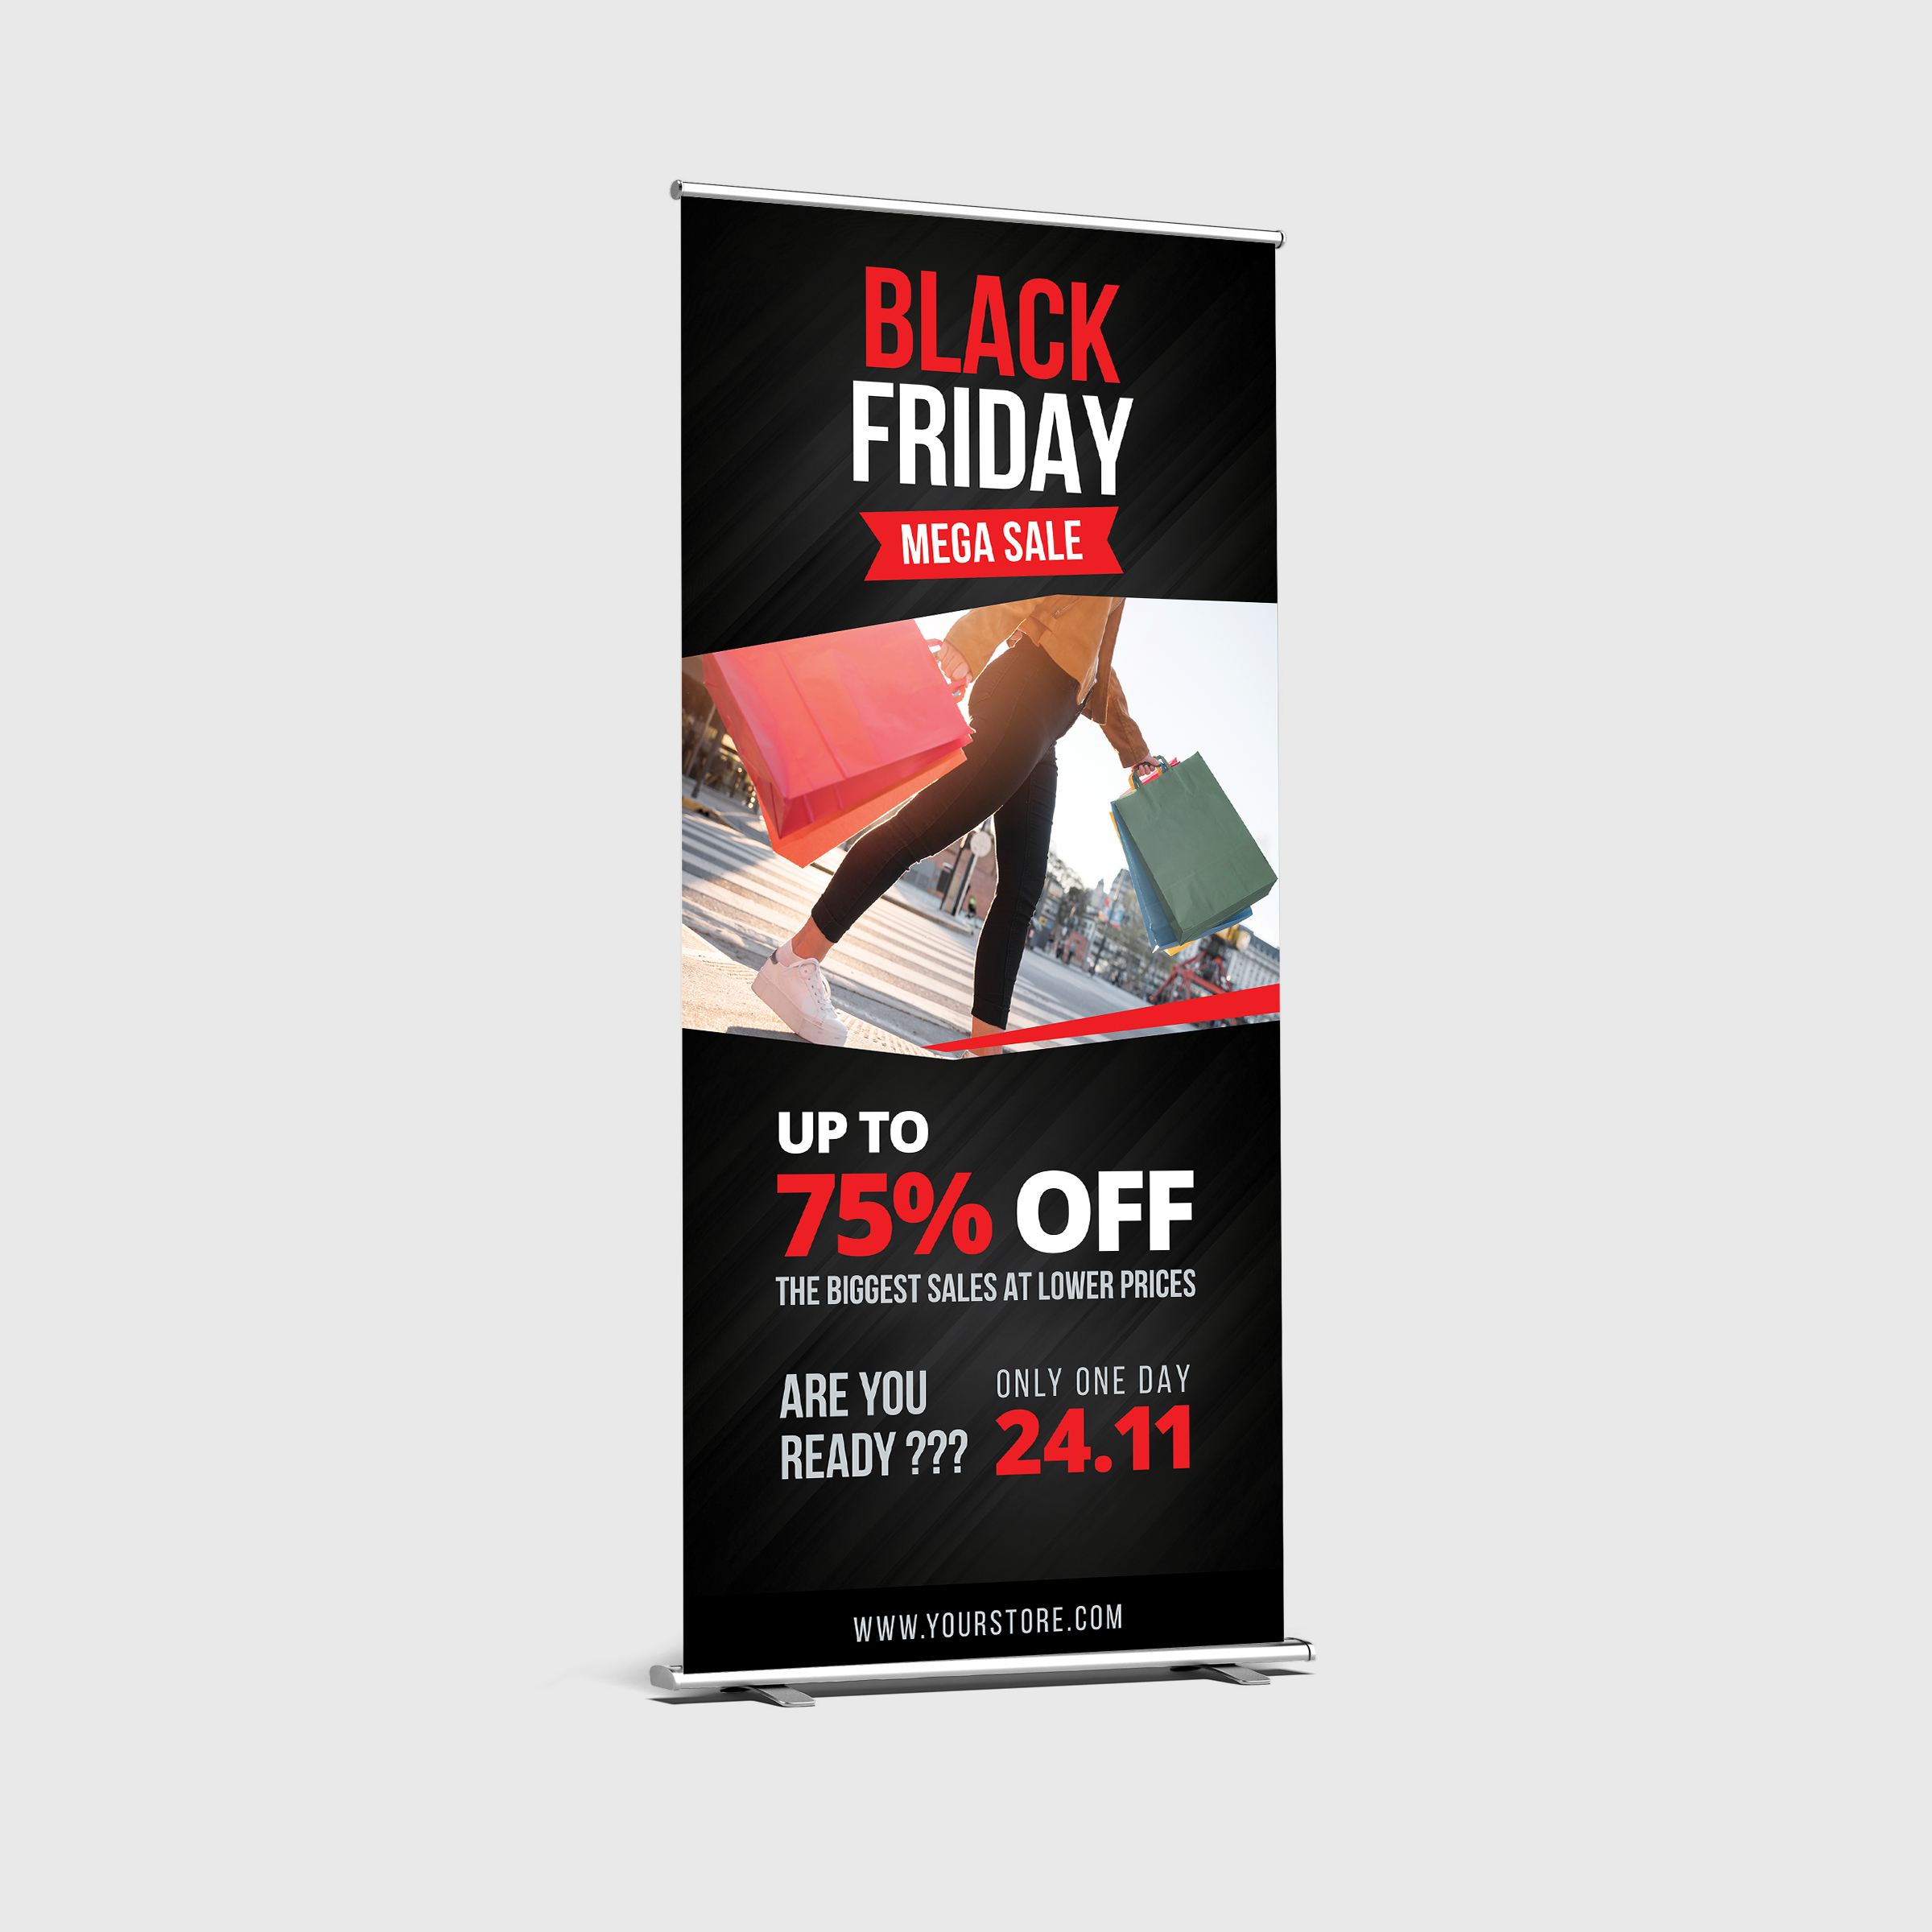 Black Friday Roll Up Banner example image 2